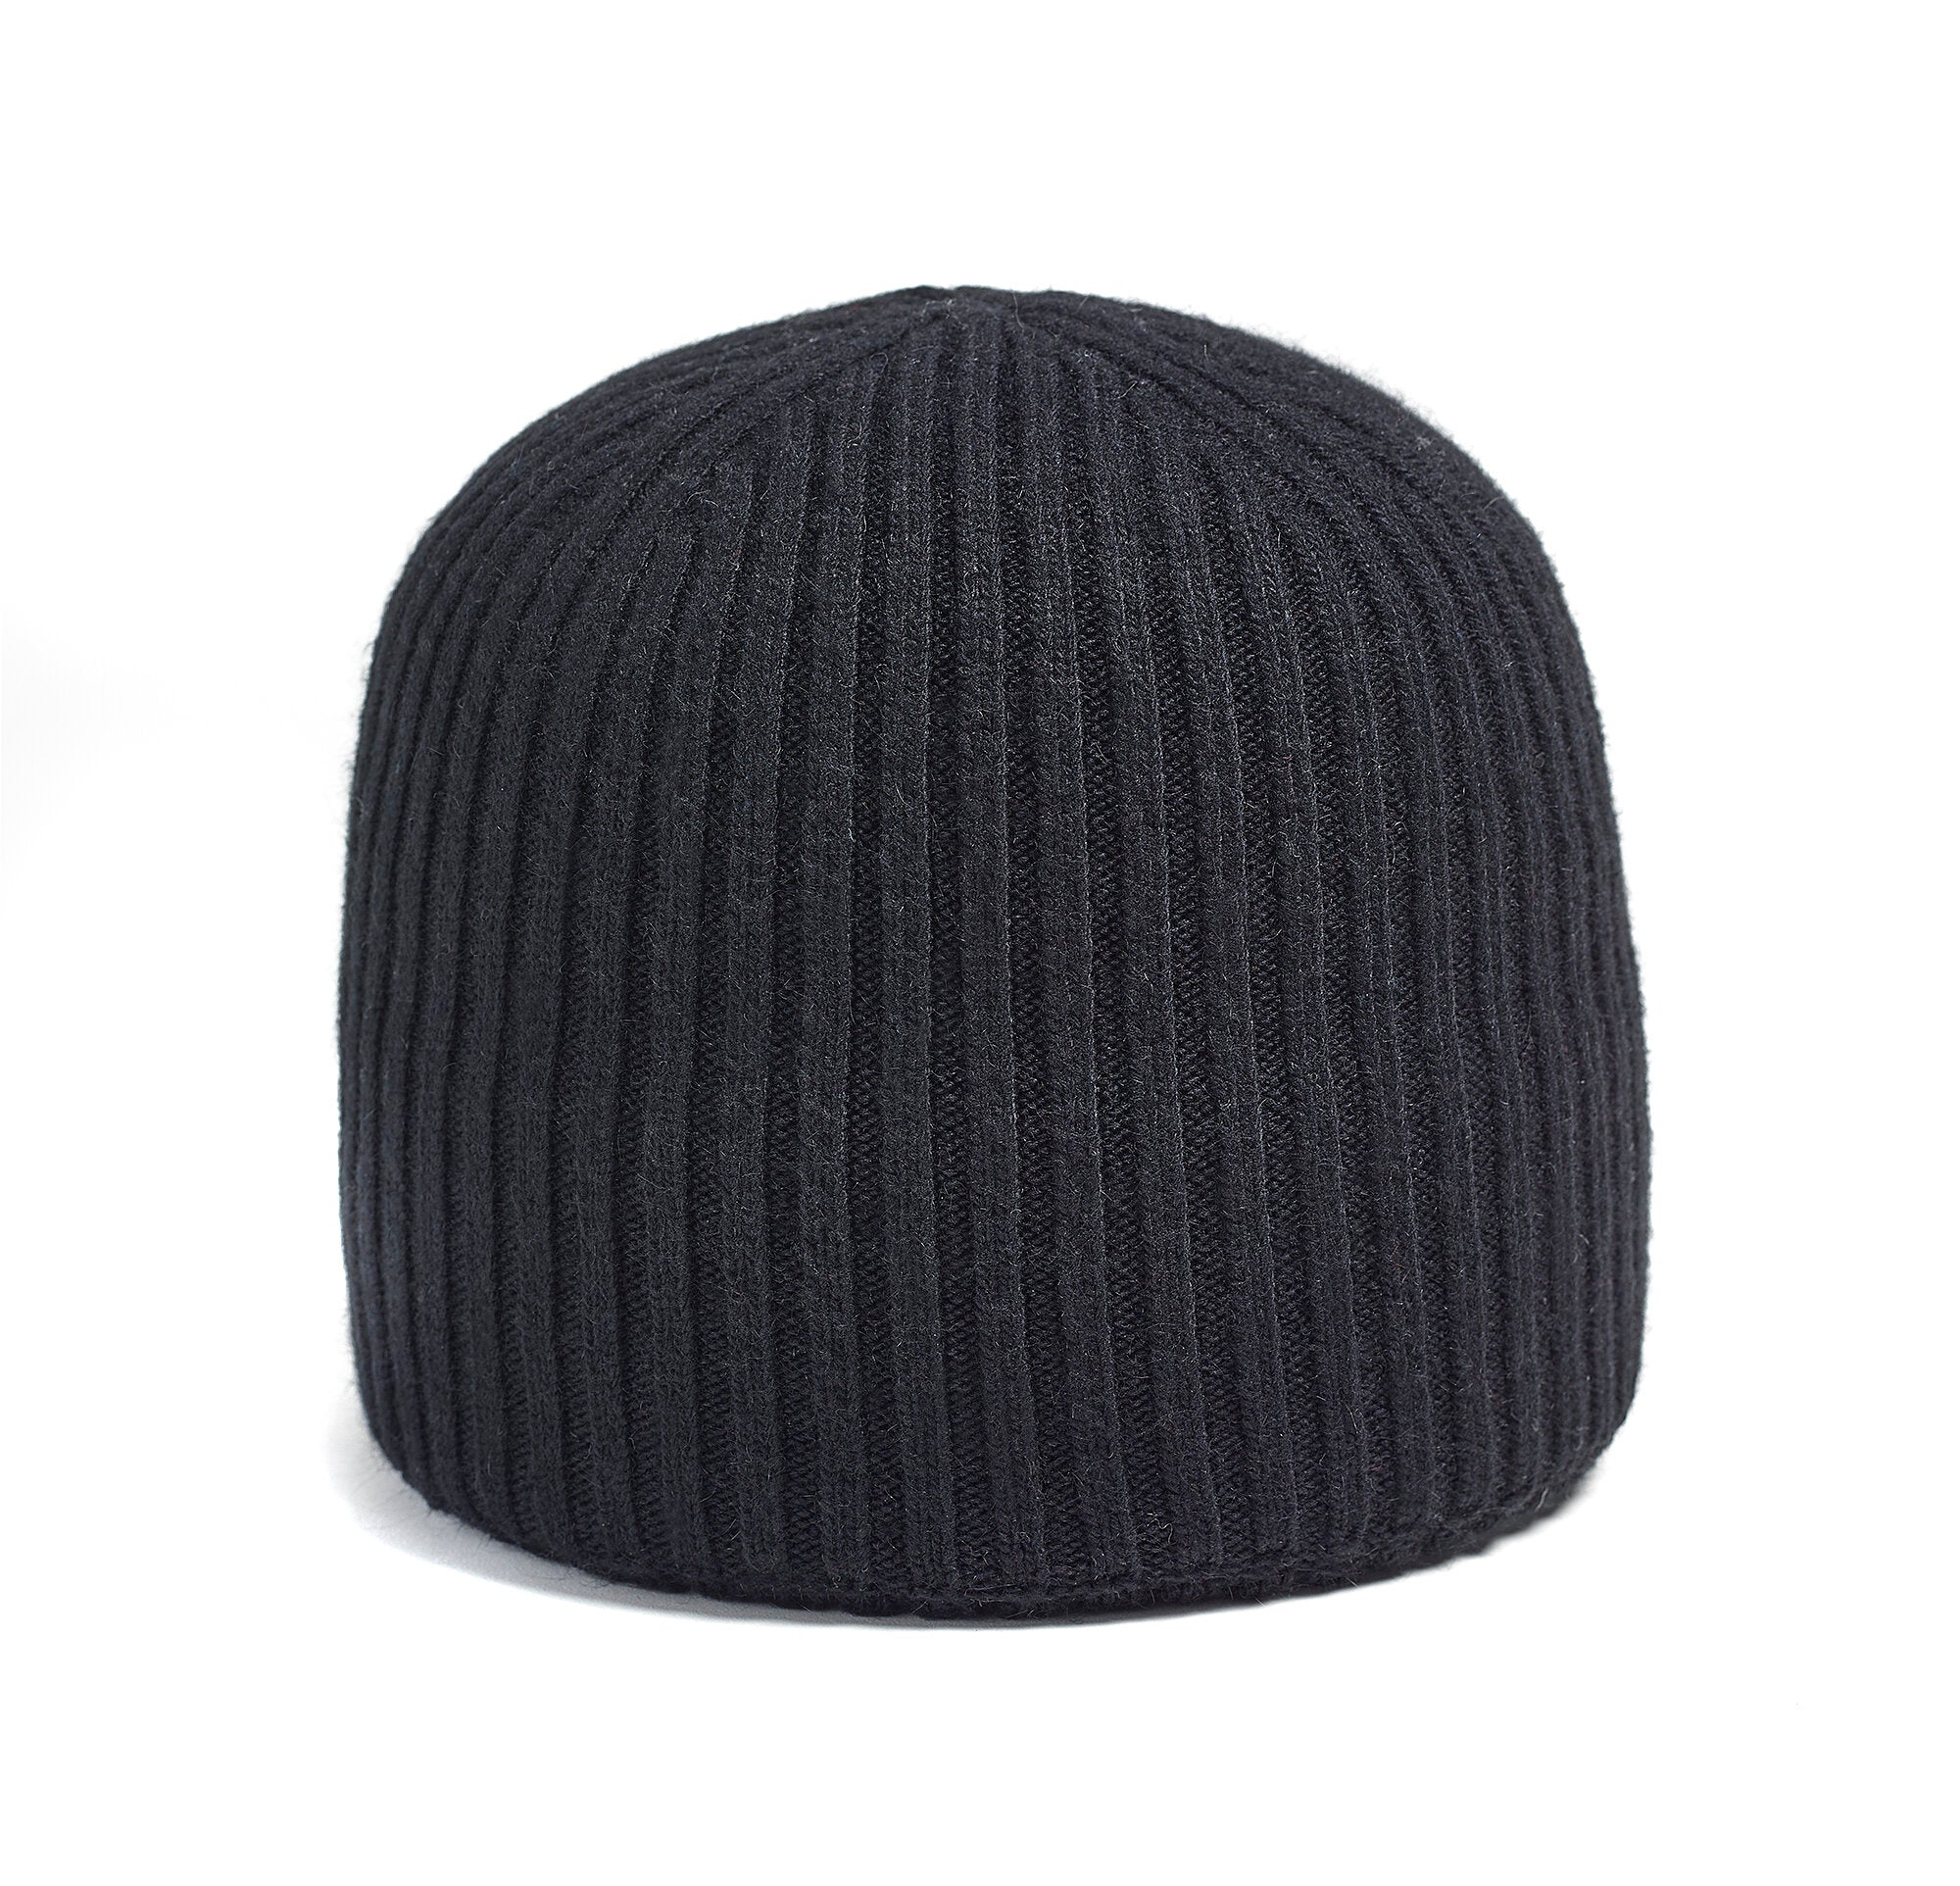 BRUME - GALATEA HAT IN BLACK